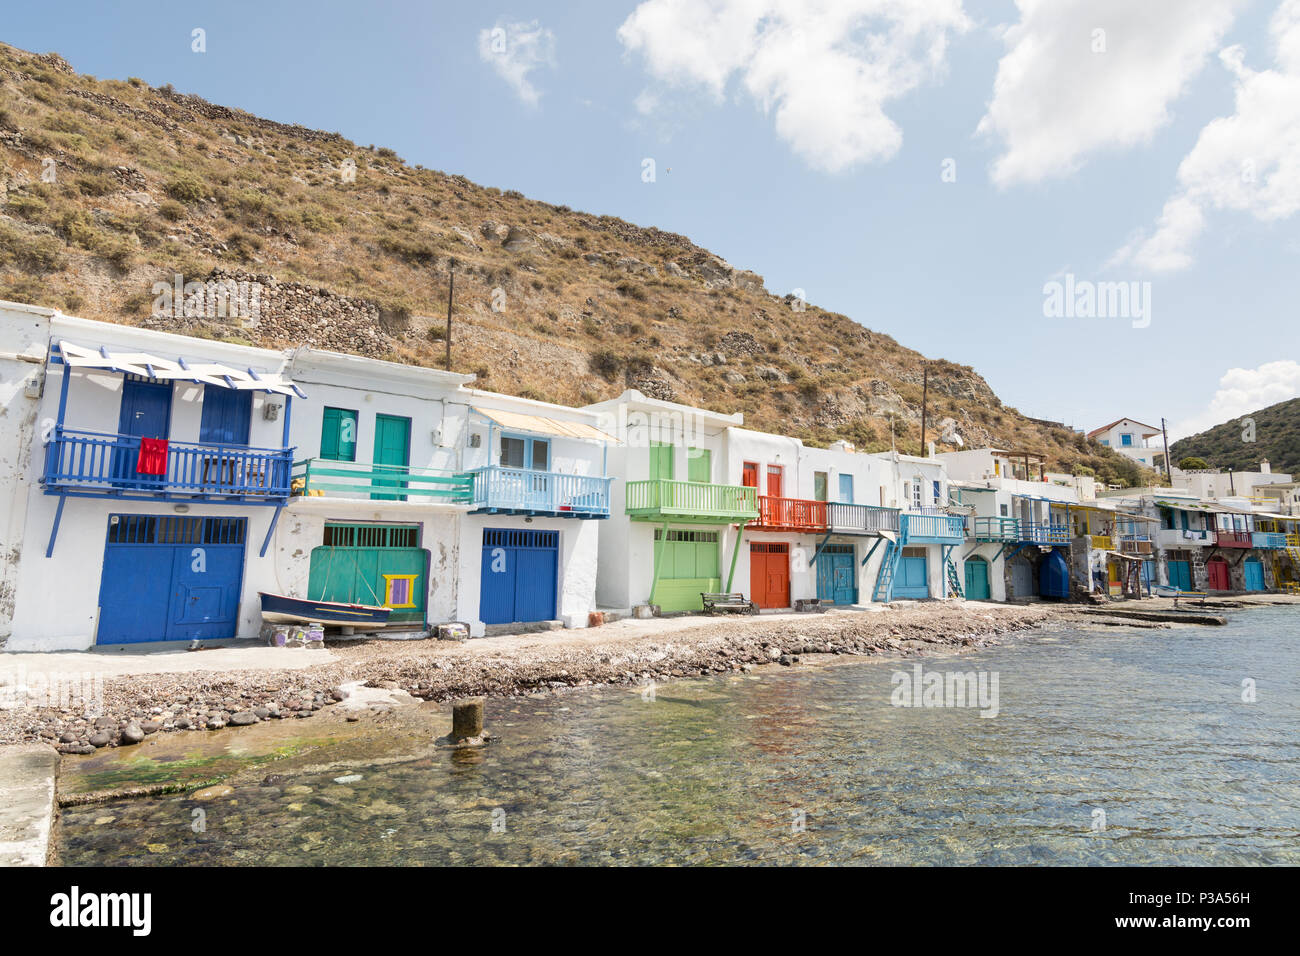 KLIMA, GREECE - MAY 2018: Colourfull old houses in fishermen town of Klima on Milos island, Greece. Sunny day, wide angle lens shot. - Stock Image